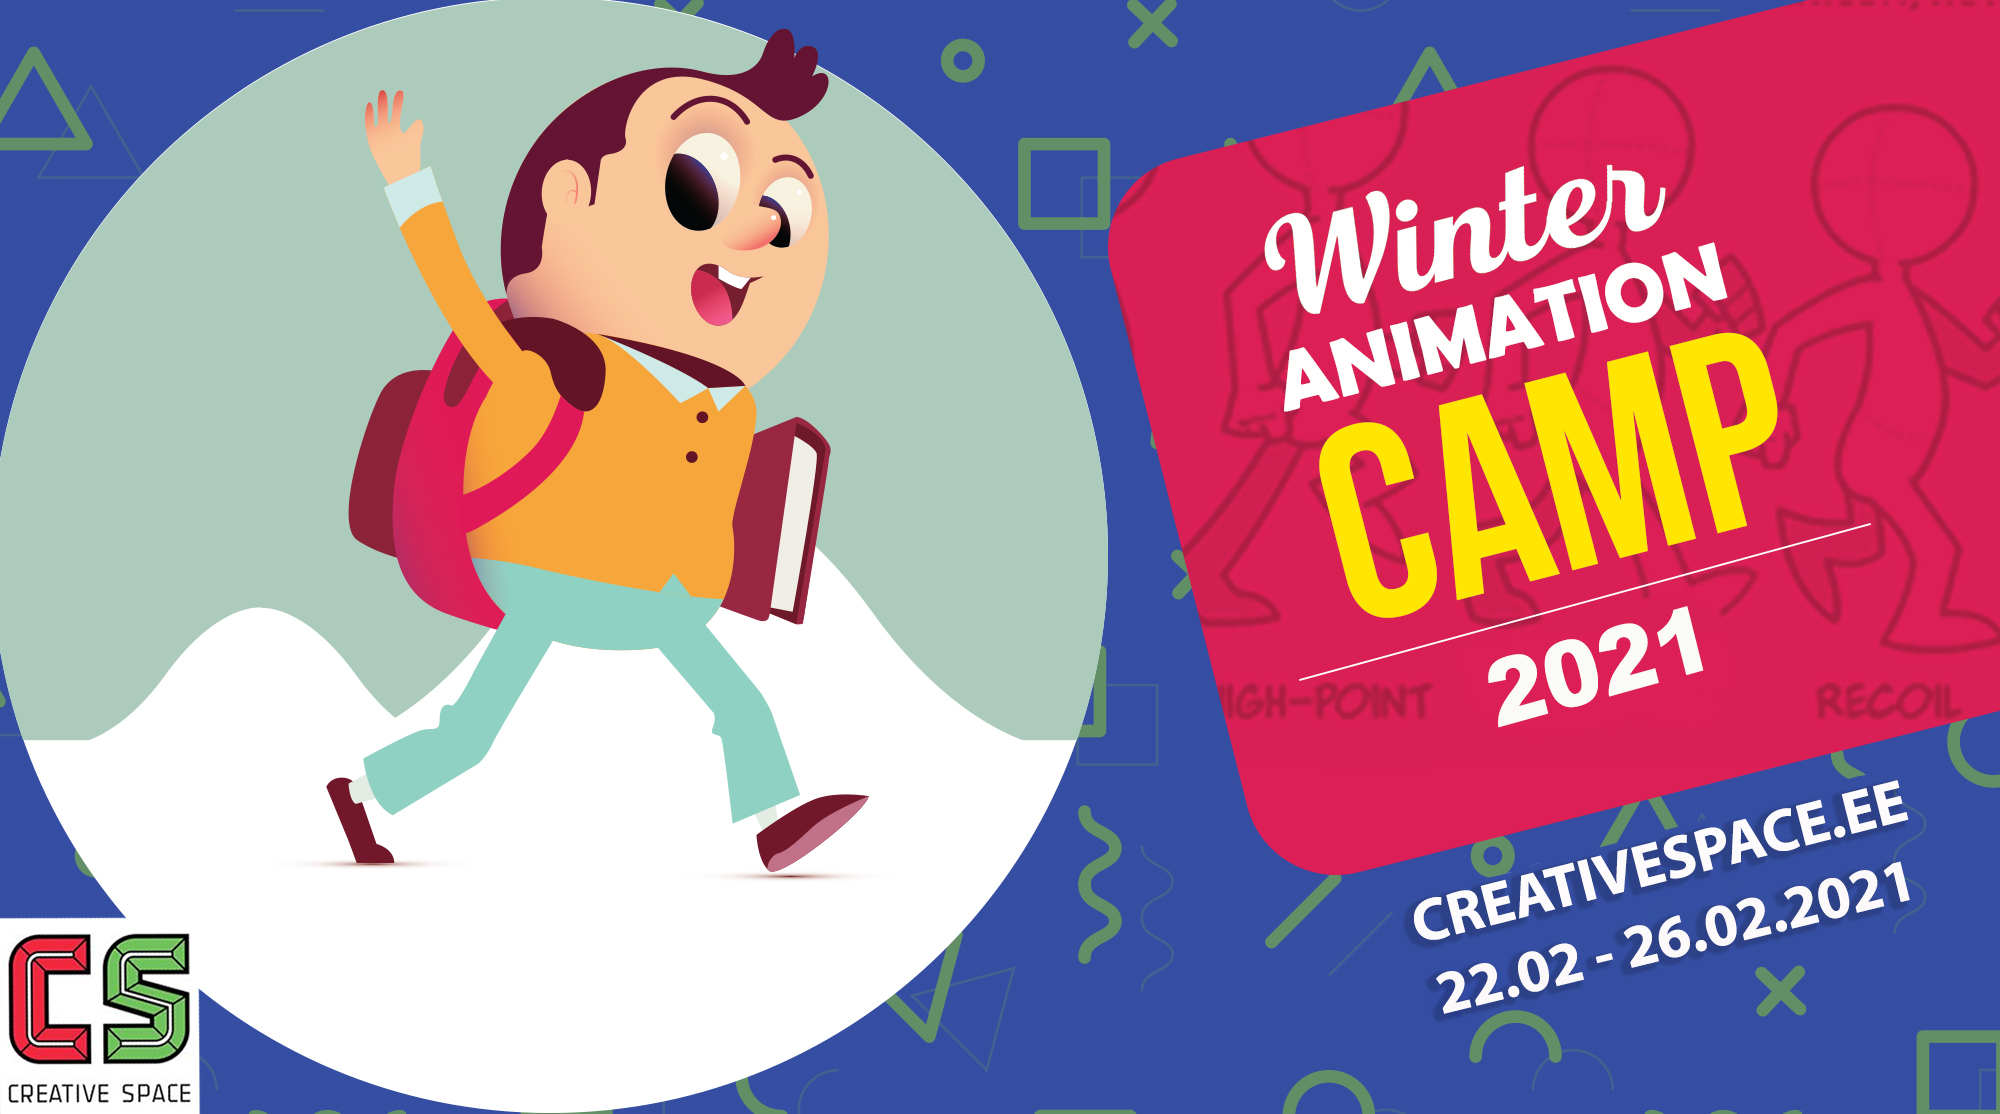 WinterAnimationCamp 22-26.02.21